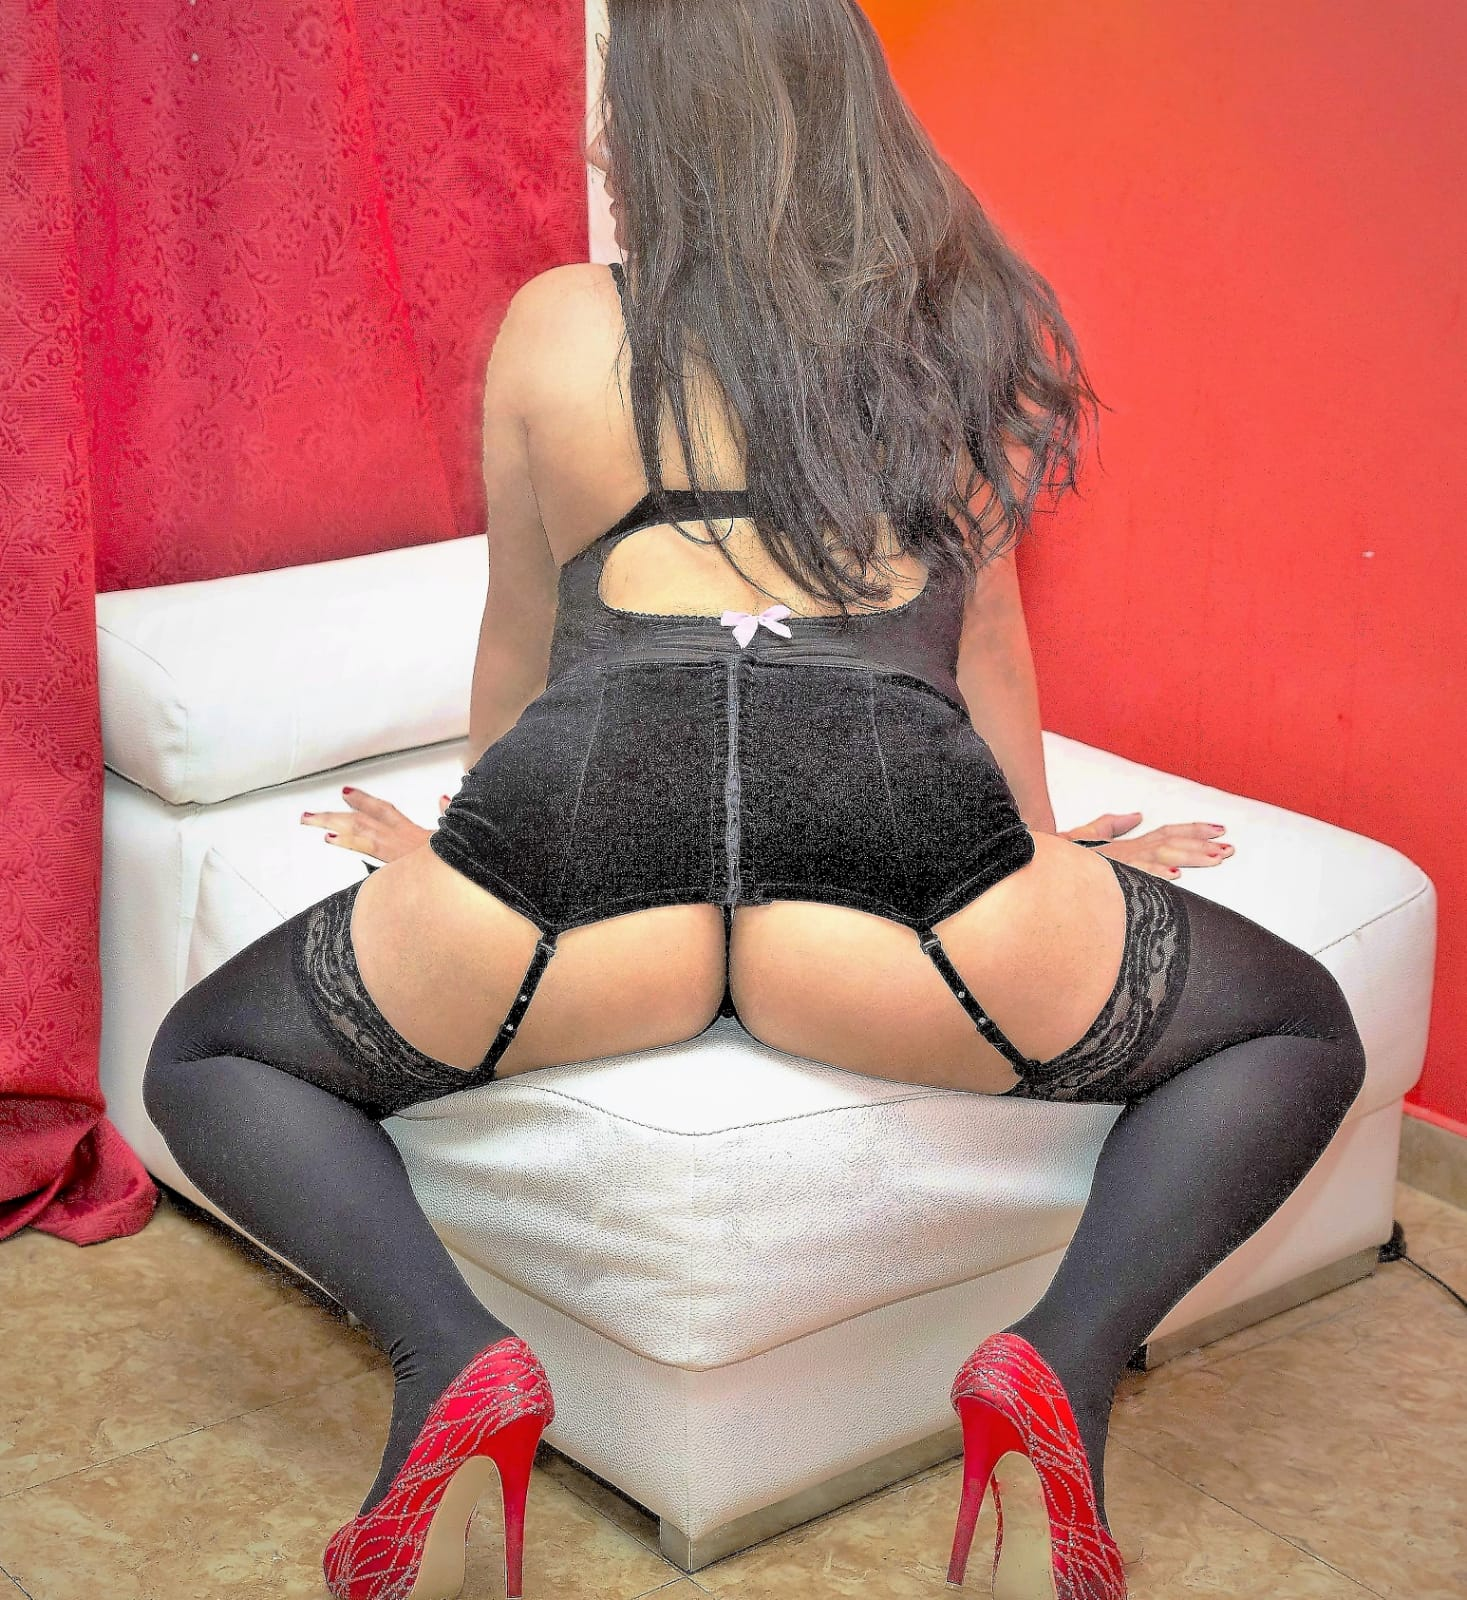 EXOTIC, HOT, LOVELY, DELICIOUS LATIN BRUNETTE 24 h